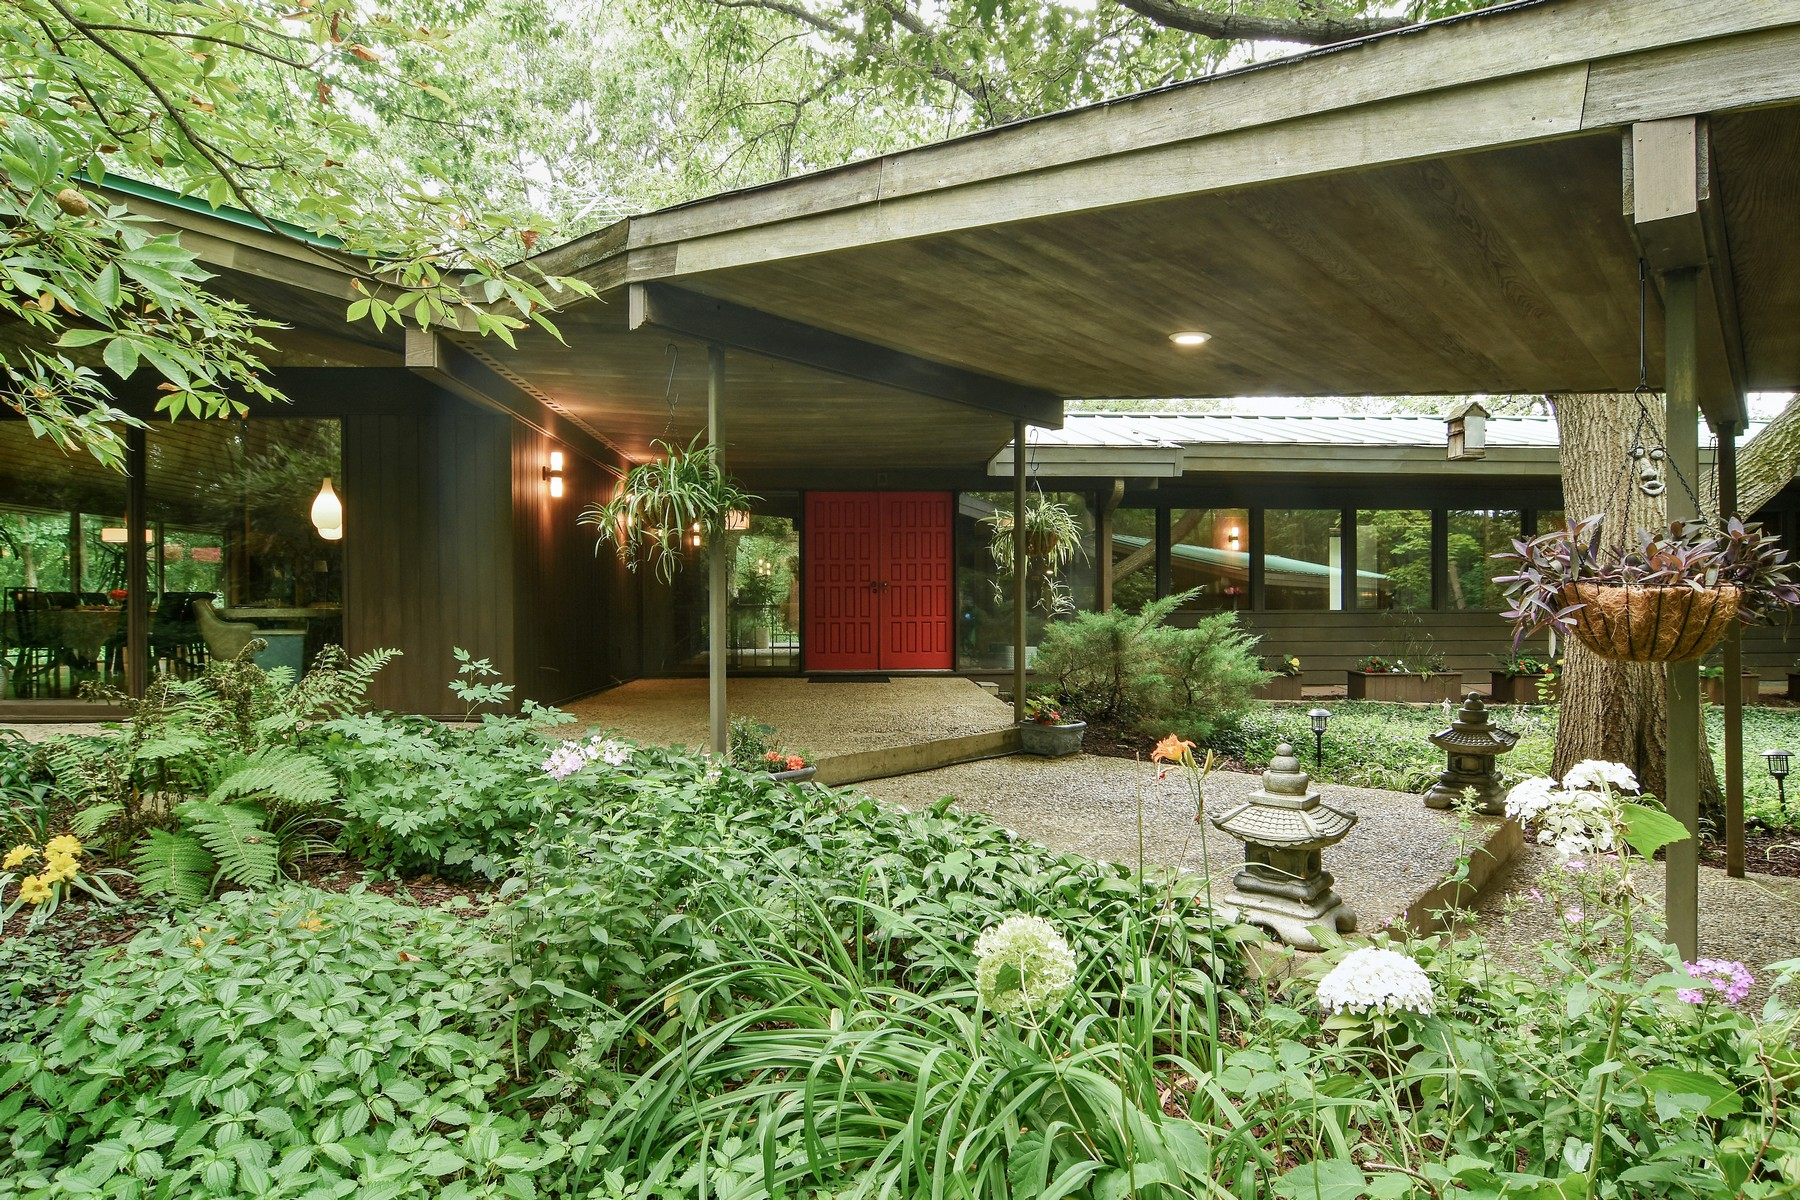 Single Family Home for Active at Mid-Century Modern Home 65 Timberlake Parkway Barrington, Illinois 60010 United States